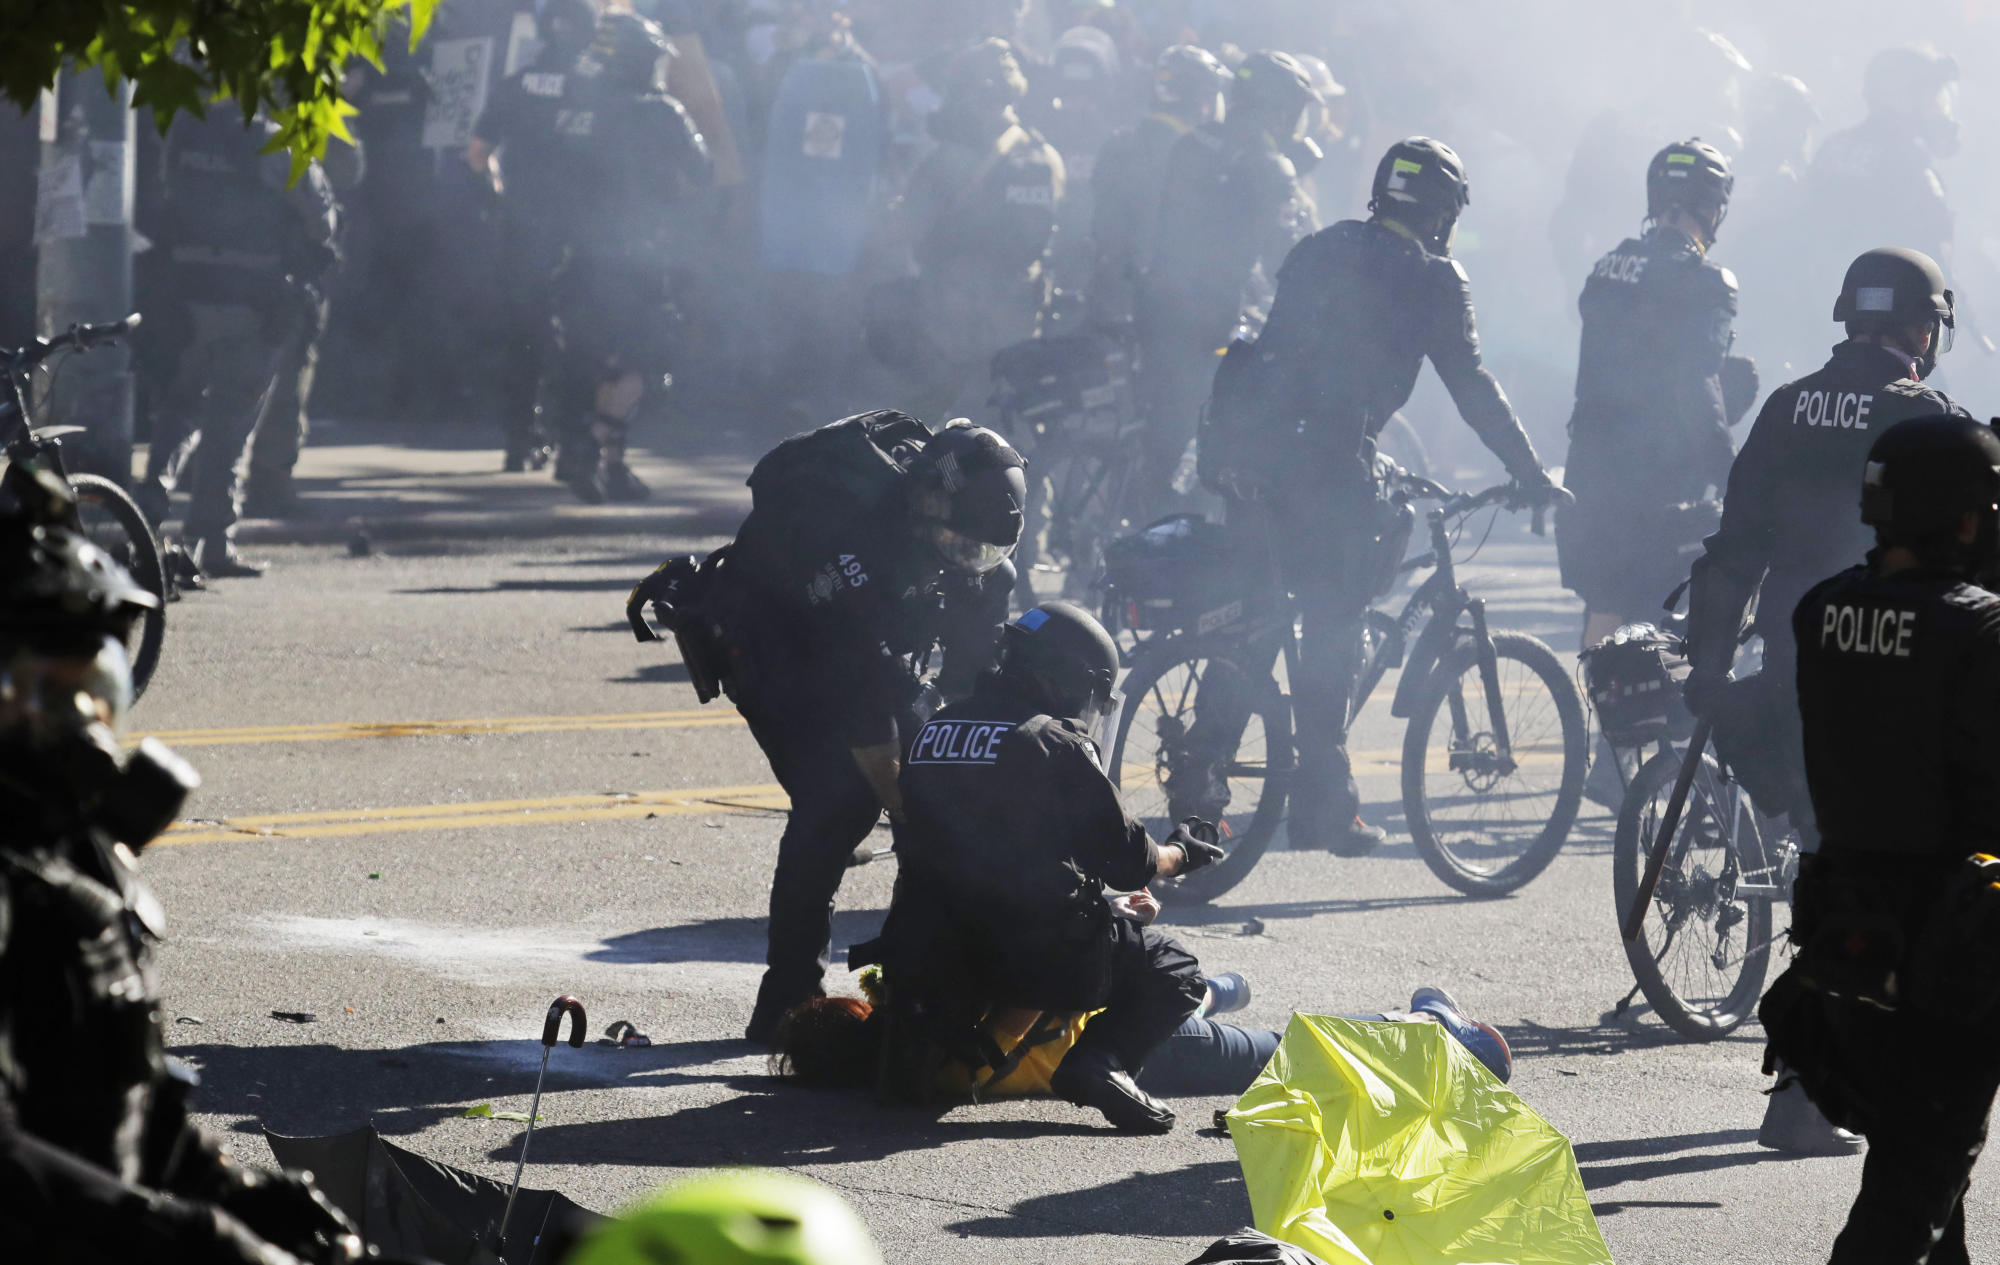 Report: Seattle officers used excessive force at protests